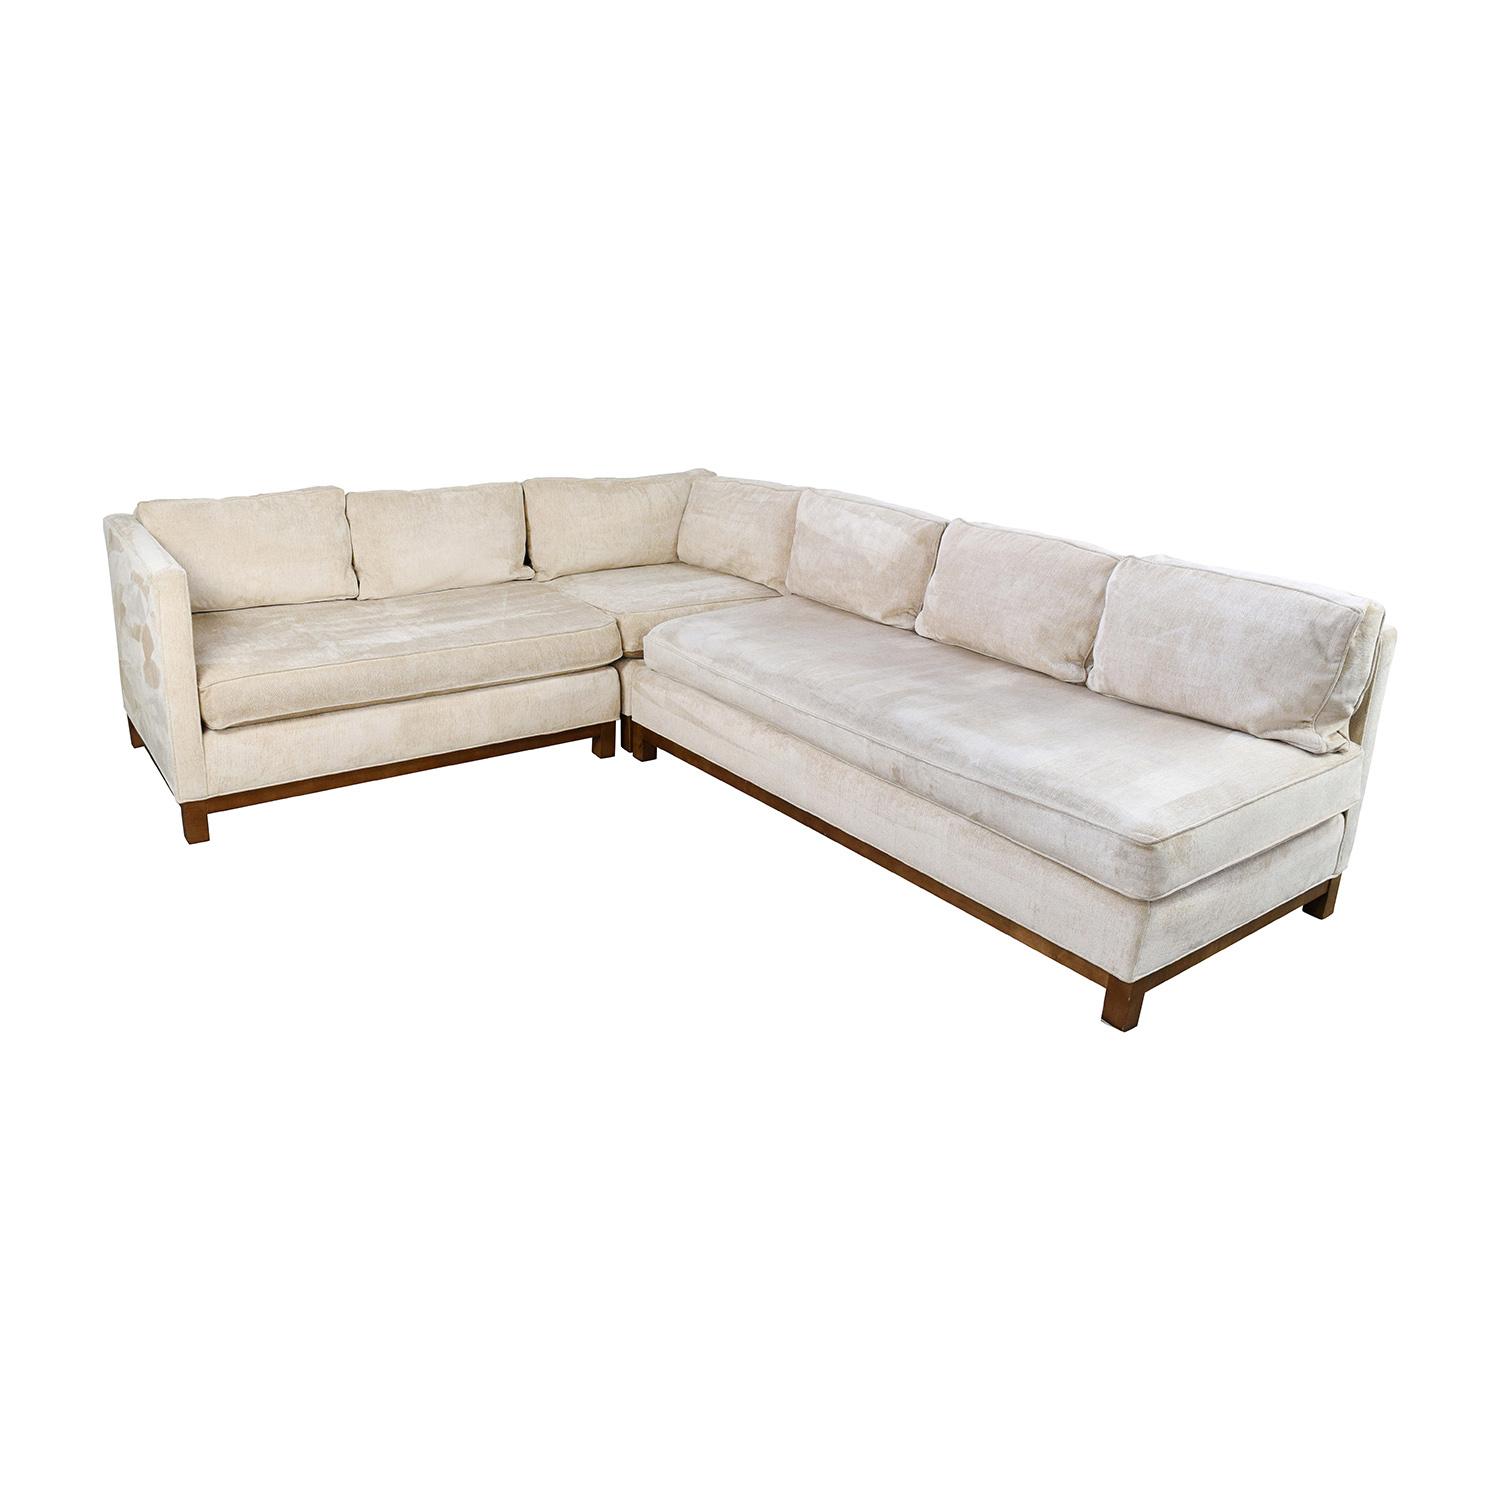 76 off mitchell gold and bob williams mitchell gold for 76 sectional sofa